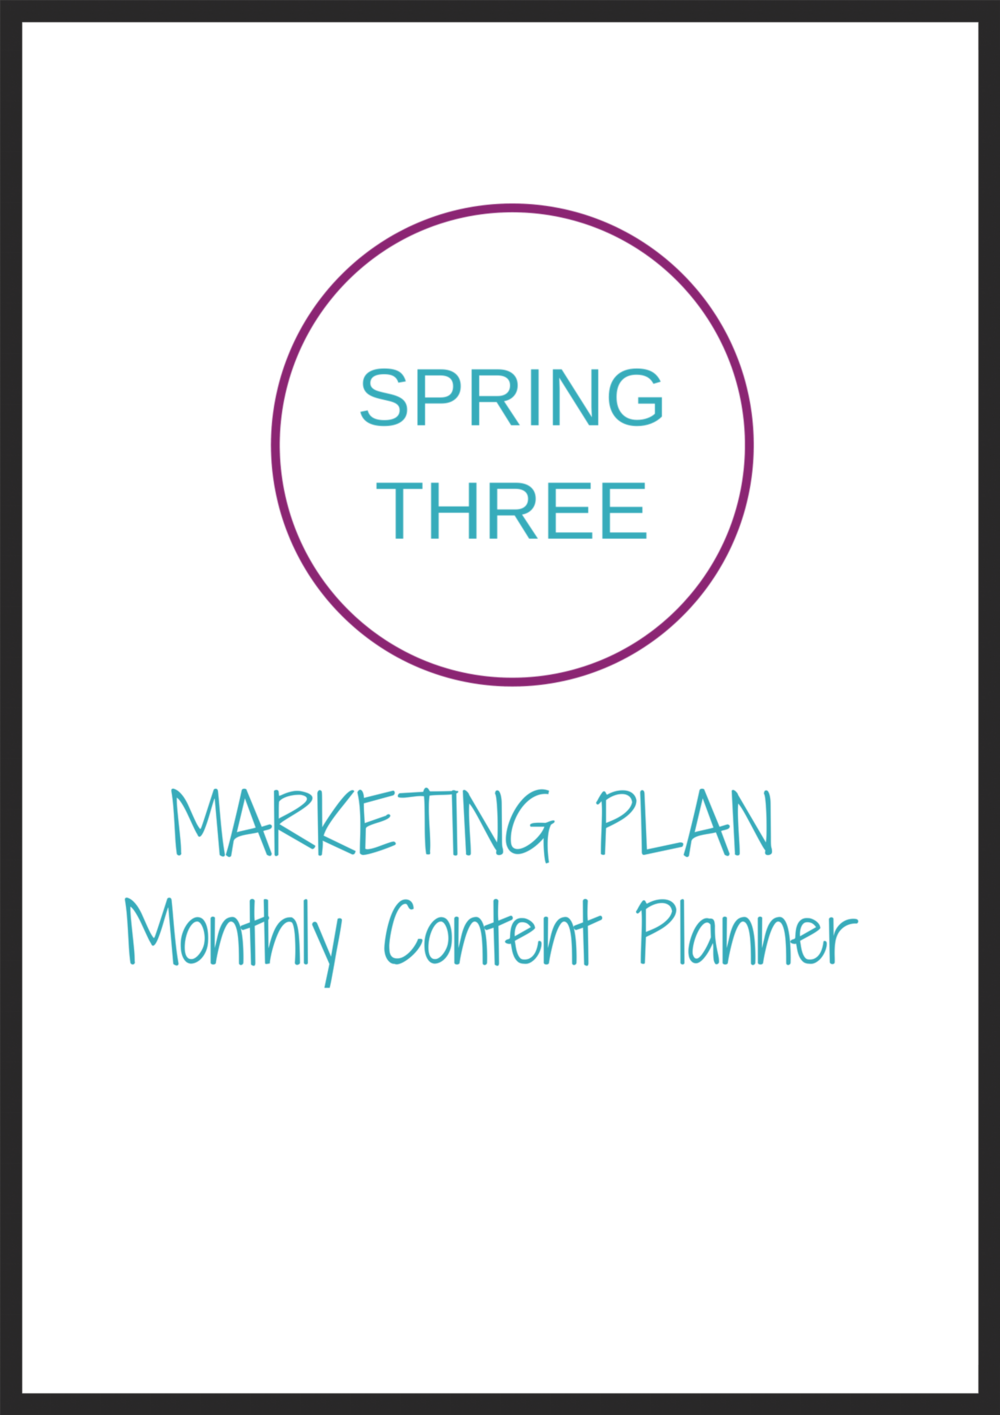 Spring Three Monthly Content Planner